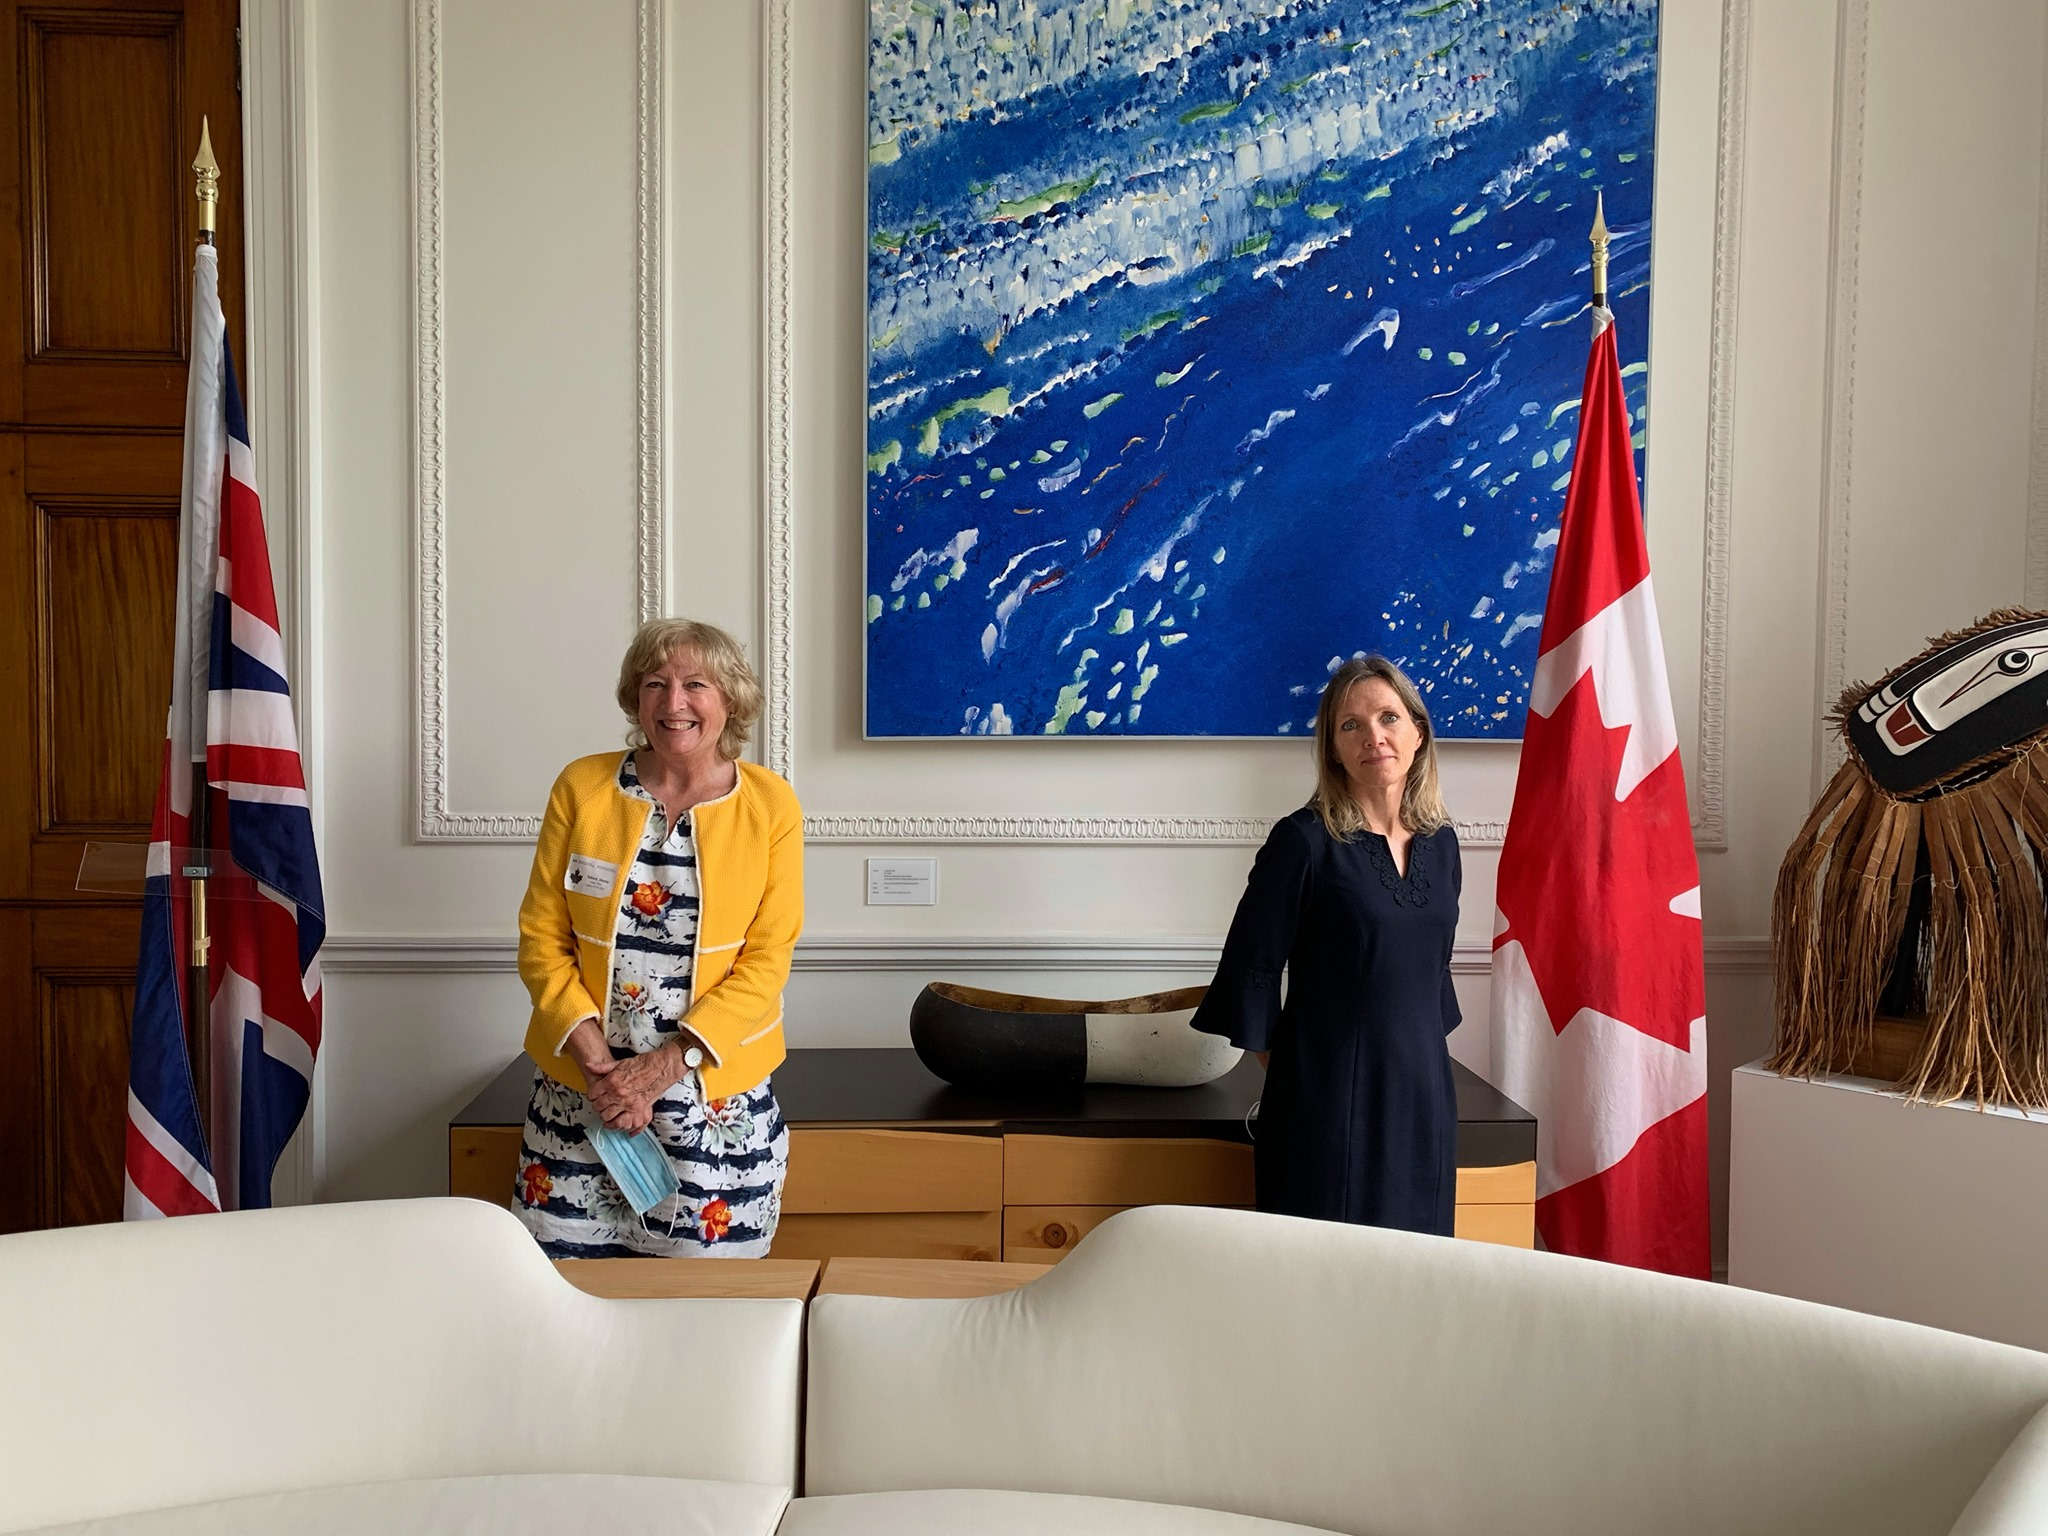 While visiting family in the UK, CABP director, Sheila Telford took time to visit the Canadian High Commission in London to discuss with the Deputy High Commissioner and Political Officer how the campaign to unfreeze pensions in Canada is progressing, and how the continued support of the Canadian government is essential to help us overcome the hurdles continually placed by the UK government